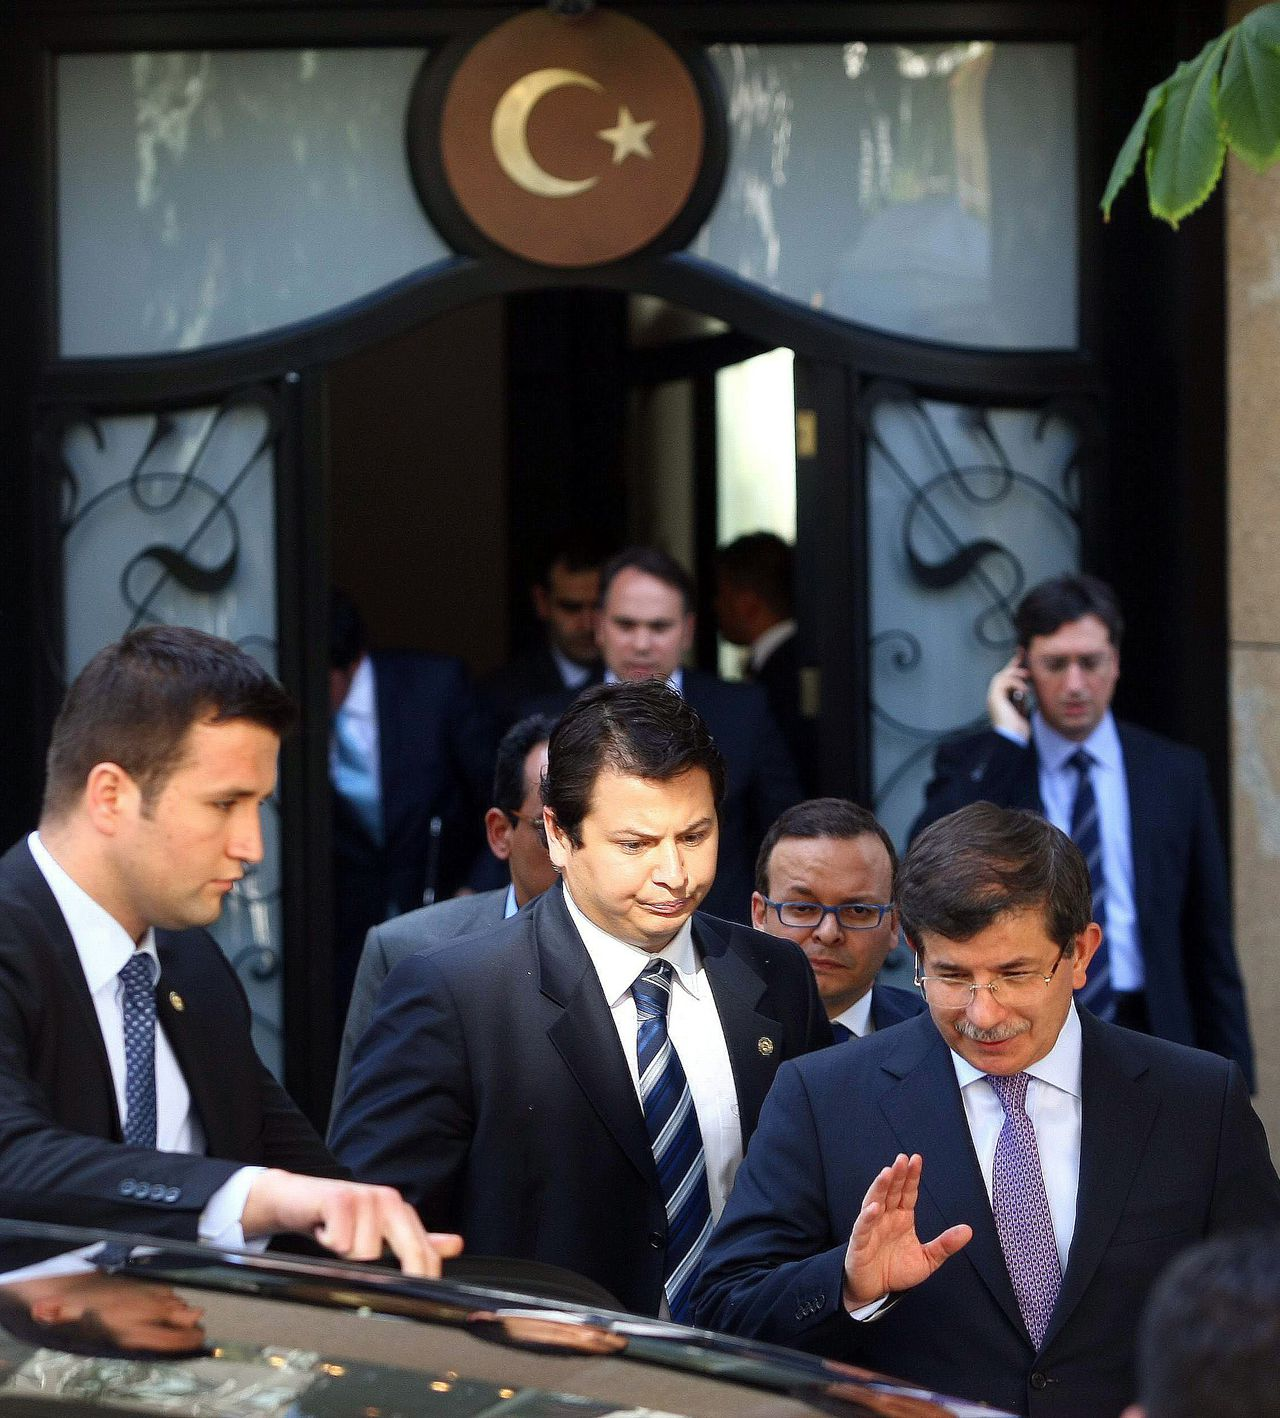 TOPSHOTS Turkey's Foreign Minister Ahmet Davutoglu (R) leaves a meeting to discuss efforts to locate the crew and future steps, with army generals and other officials, in Ankara, on June 23, 2012 after Syria confirmed it had shot down a Turkish fighter jet. Turkey said on June 23 one of its fighter jets may have violated Syrian airspace after Damascus confirmed shooting it down, in comments seen as a bid to cool the latest spat between the former allies. Both countries were now searching for the two missing crew of the Turkish F-4 Phantom jet shot down over the eastern Mediterranean on June 22, 2012.AFP PHOTO/ADEM ALTAN